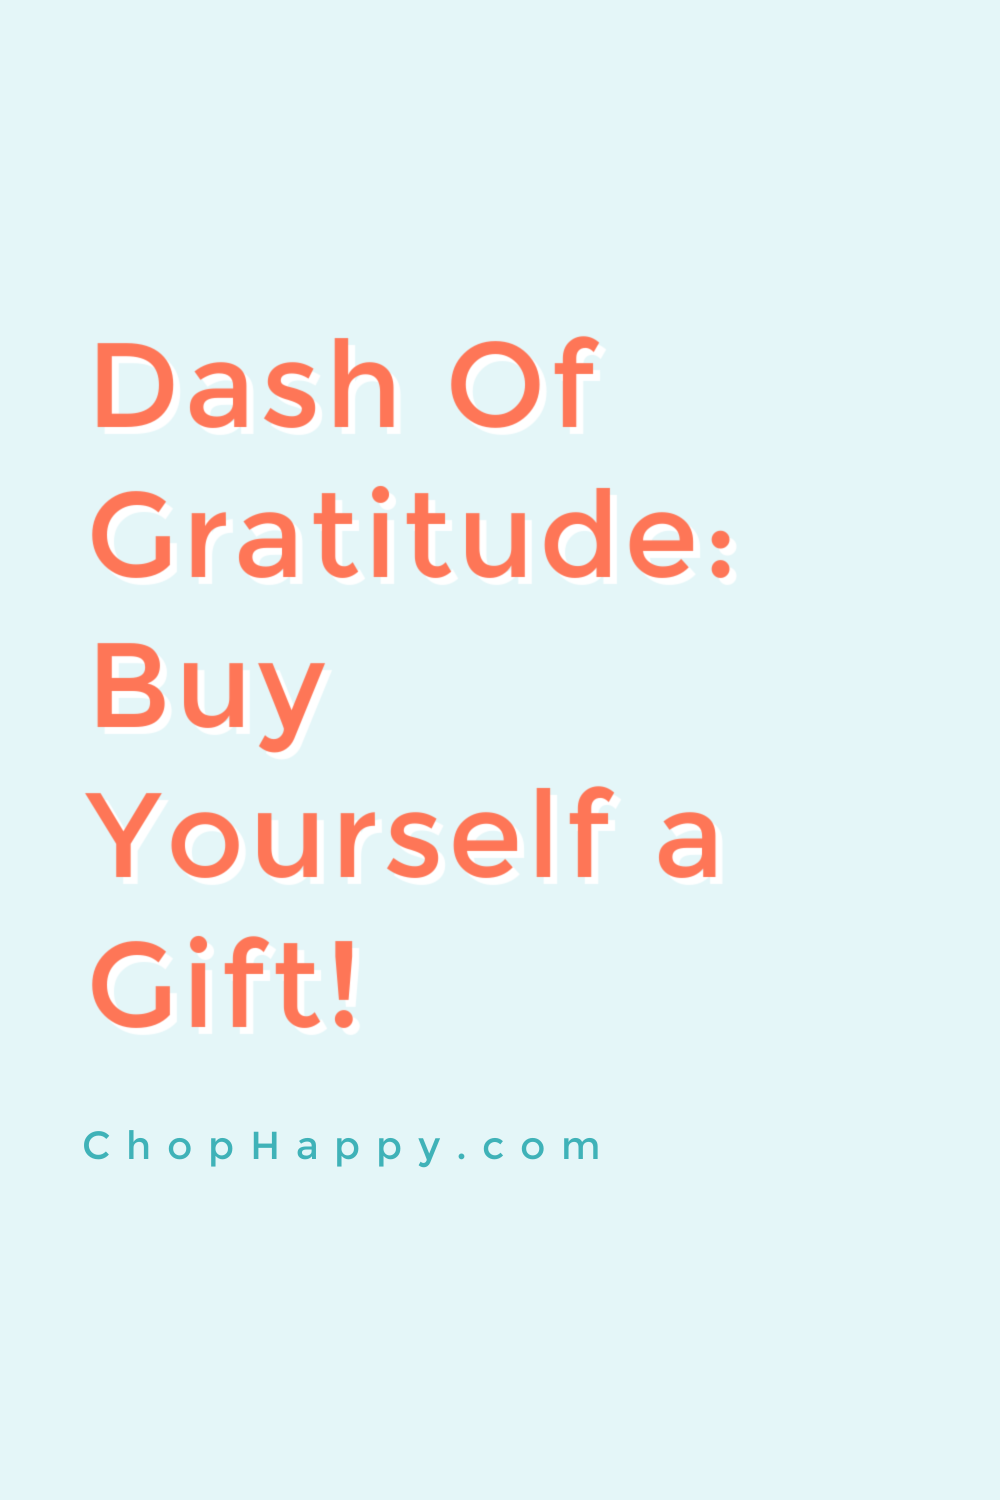 Dash of Gratitude: Buy Yourself a Gift.  Use your attitude of gratitude to help you! Buy yourself a gift to thank yourself and tell yourself you are great! www.ChopHappy.com #attitudeofgratitude #lawofattraction